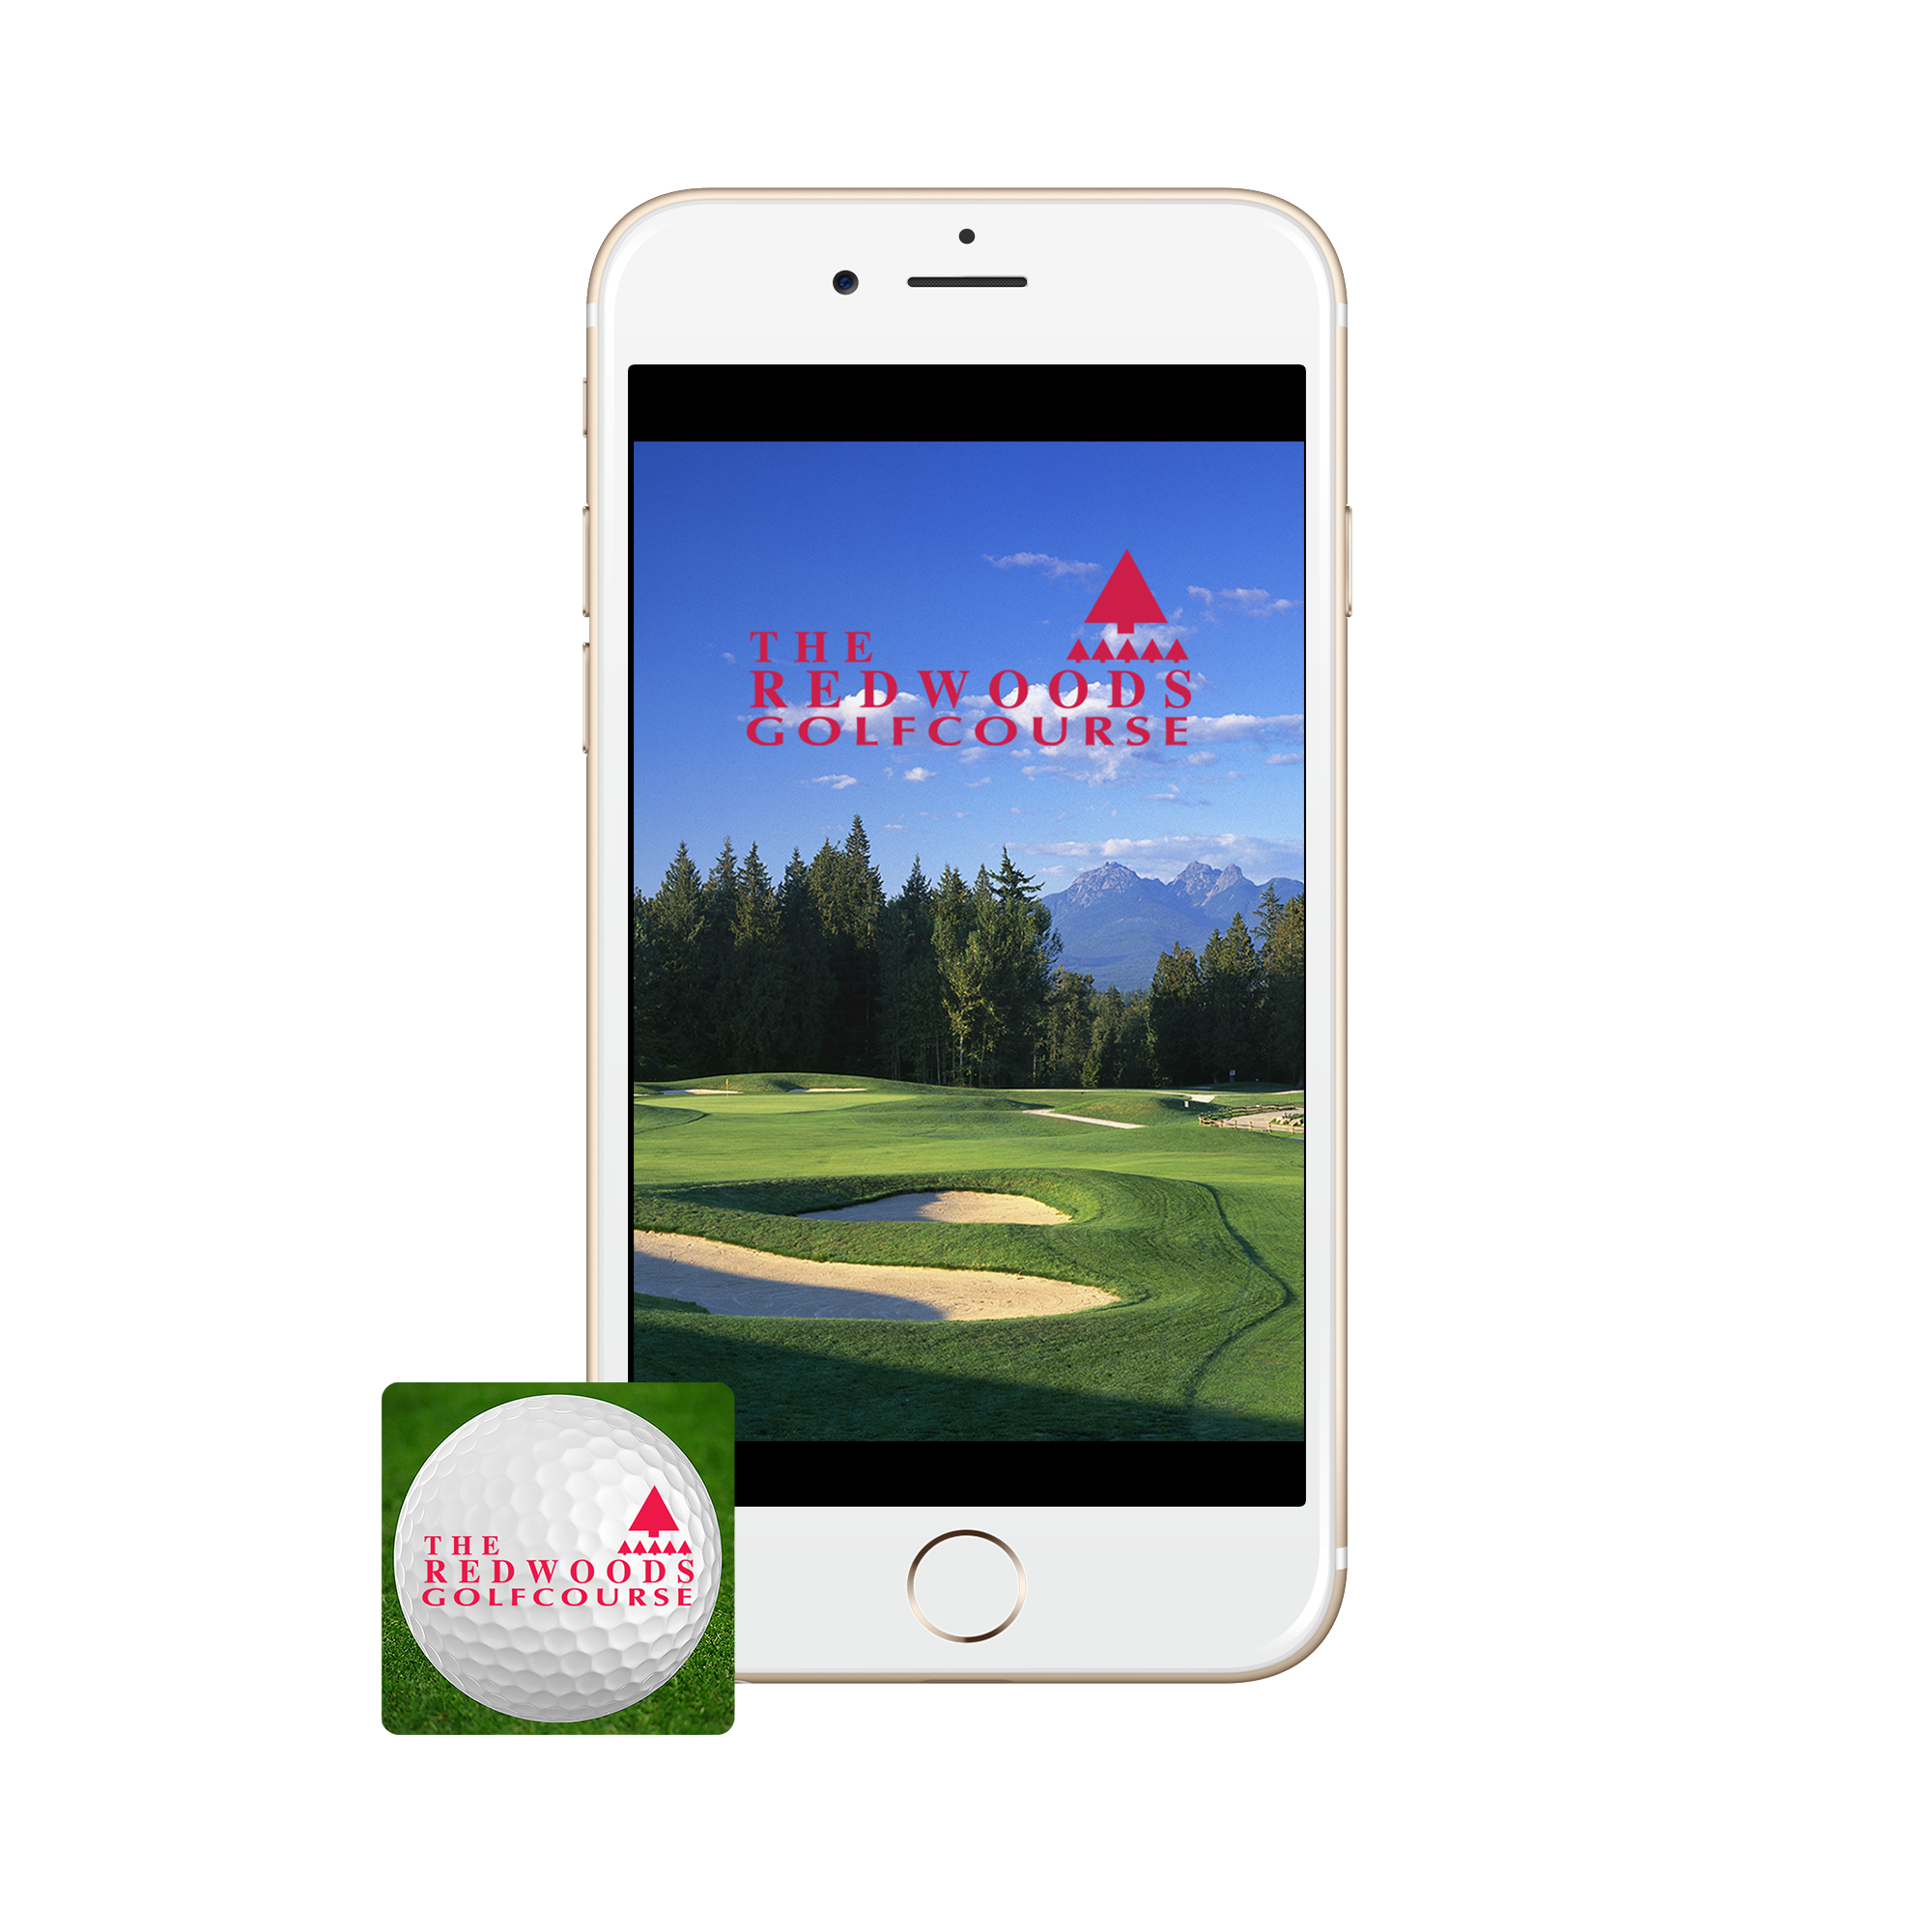 Redwoods golf course iPhone app with Icon